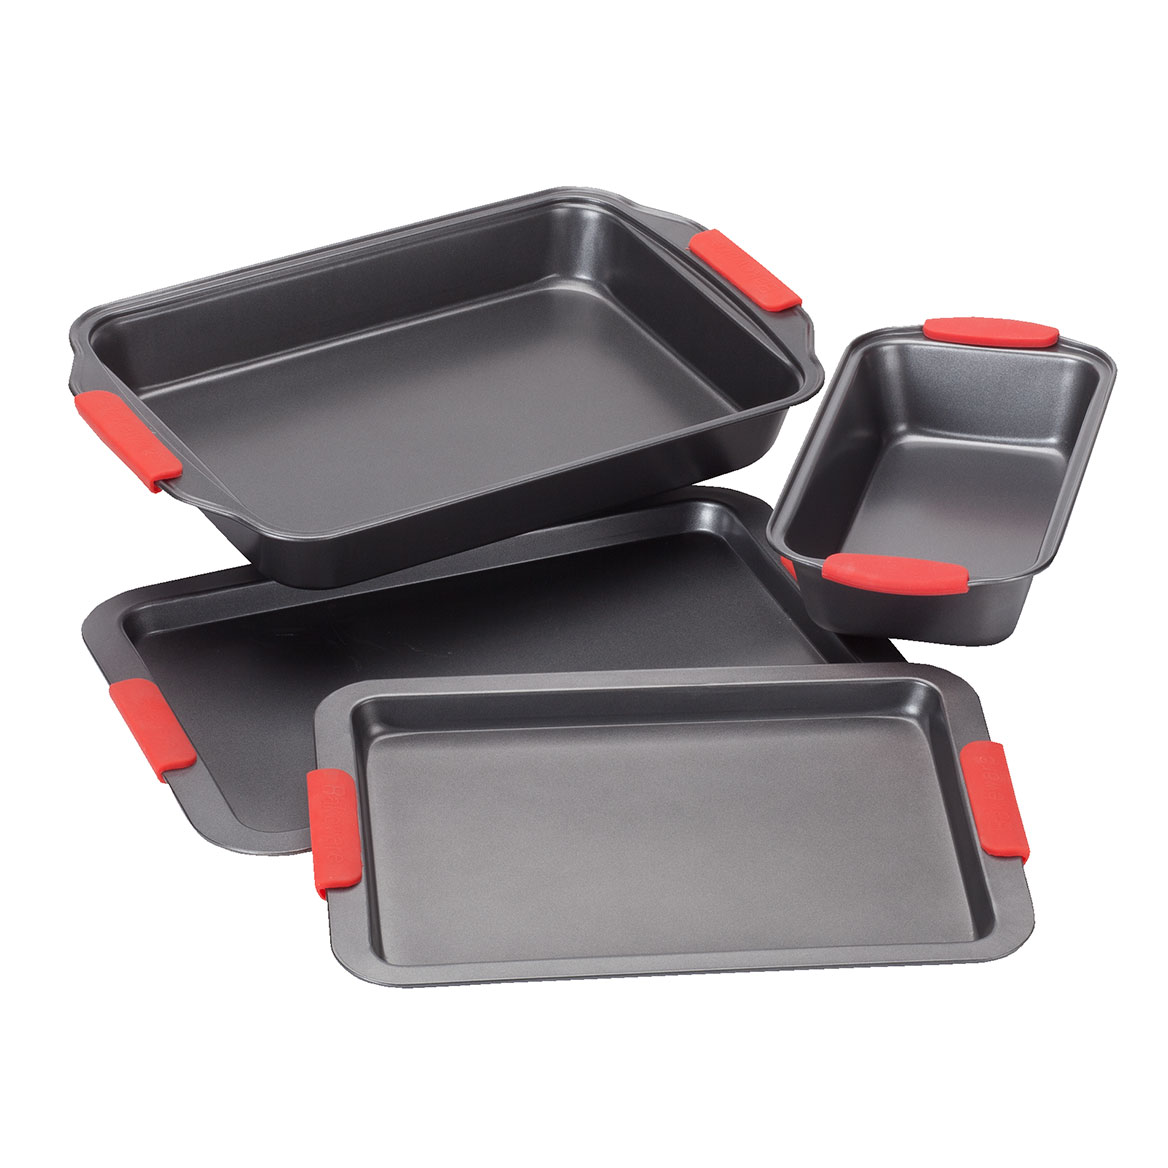 Cook's Essentials Baking Set with Red Silicone Handles-356760